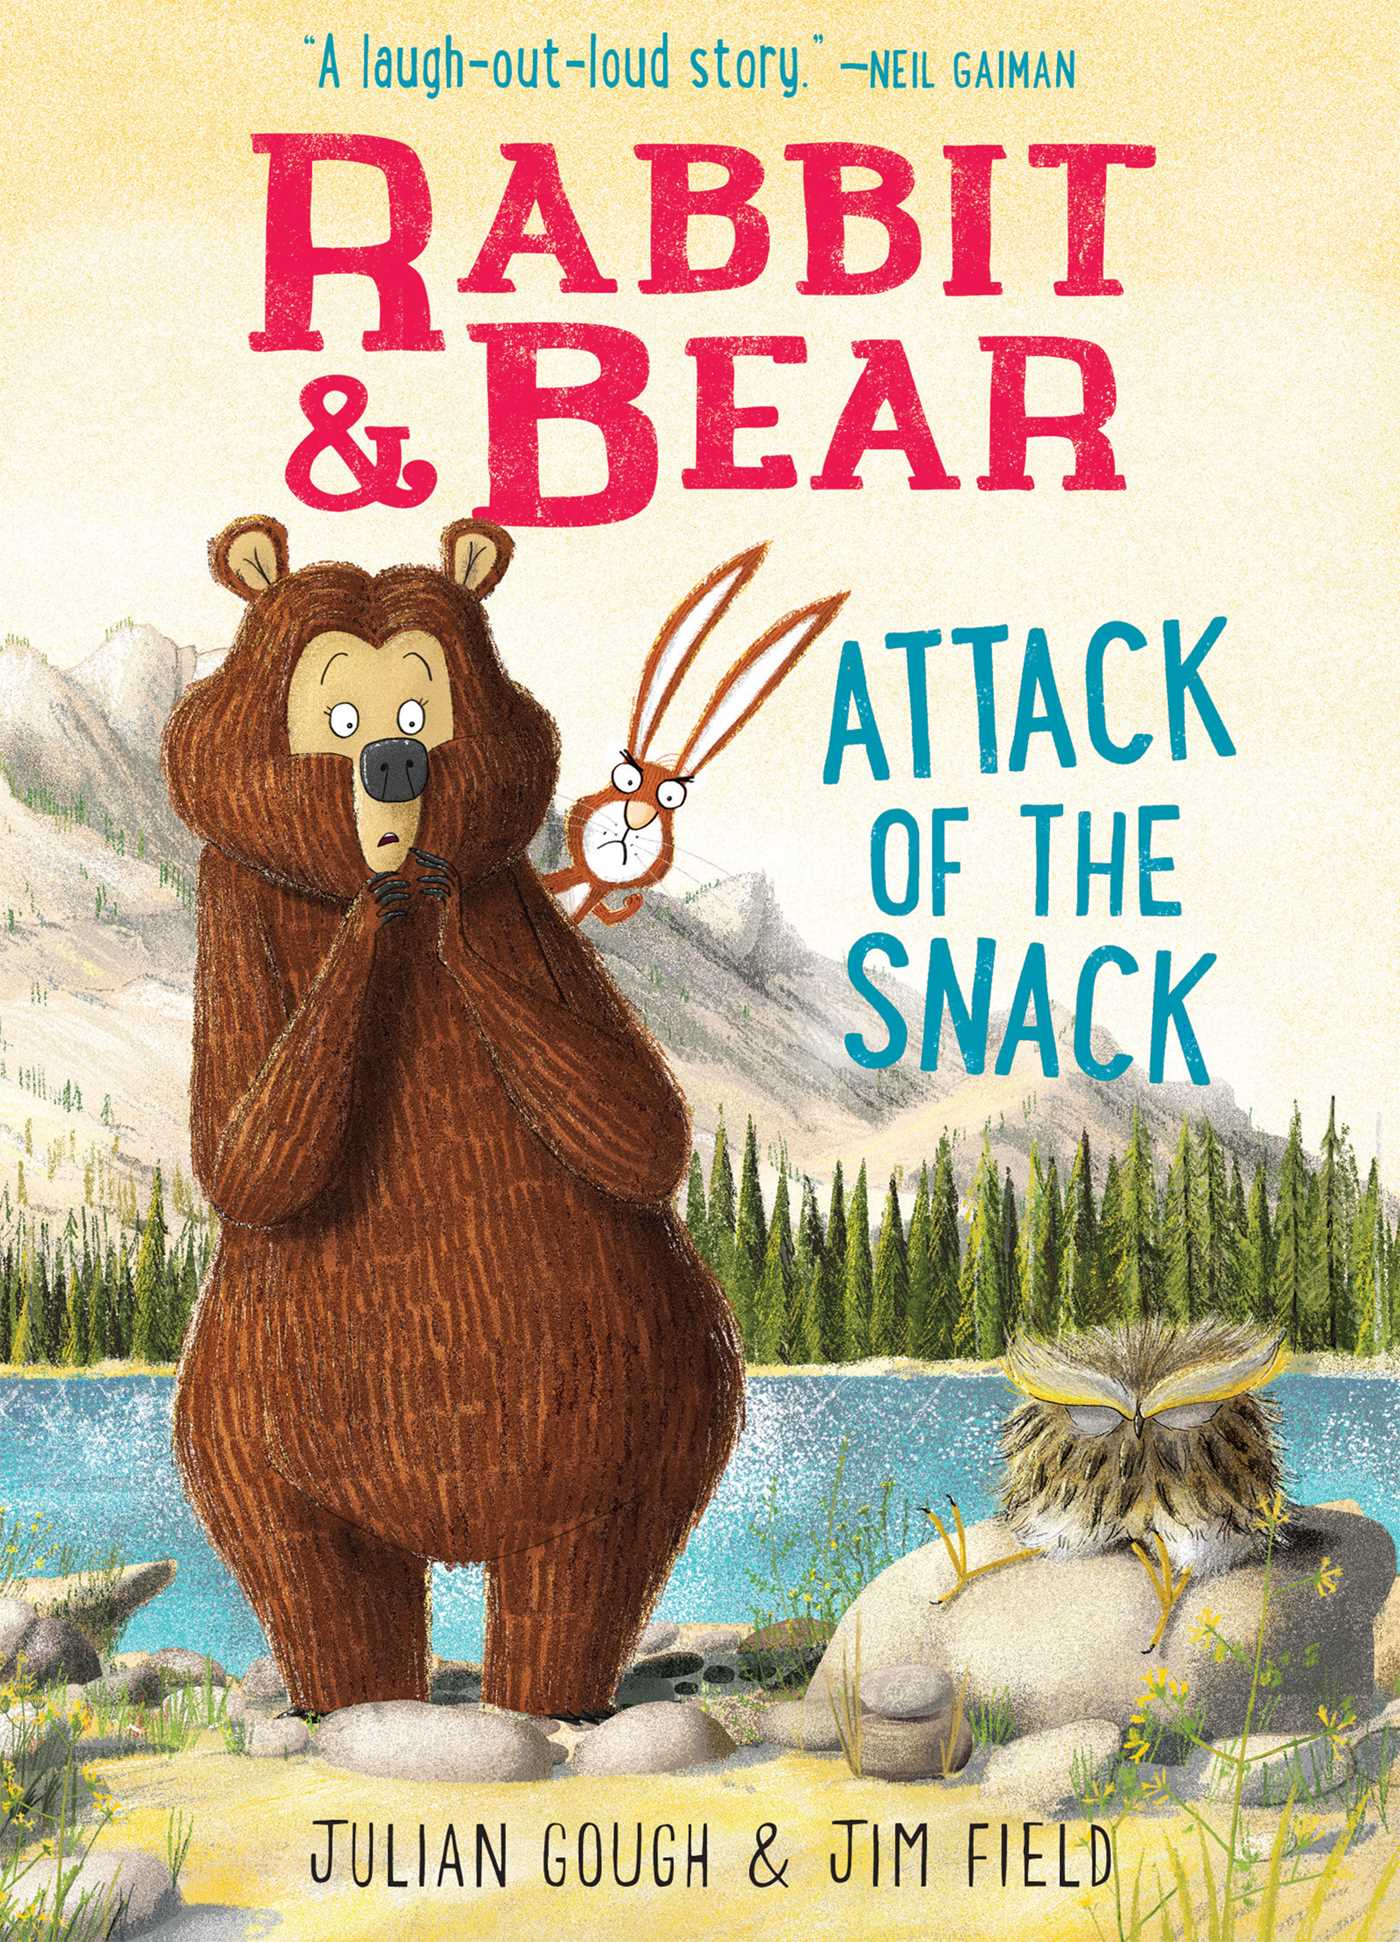 Rabbit & Bear: Attack Of The Snack by Julian Gough